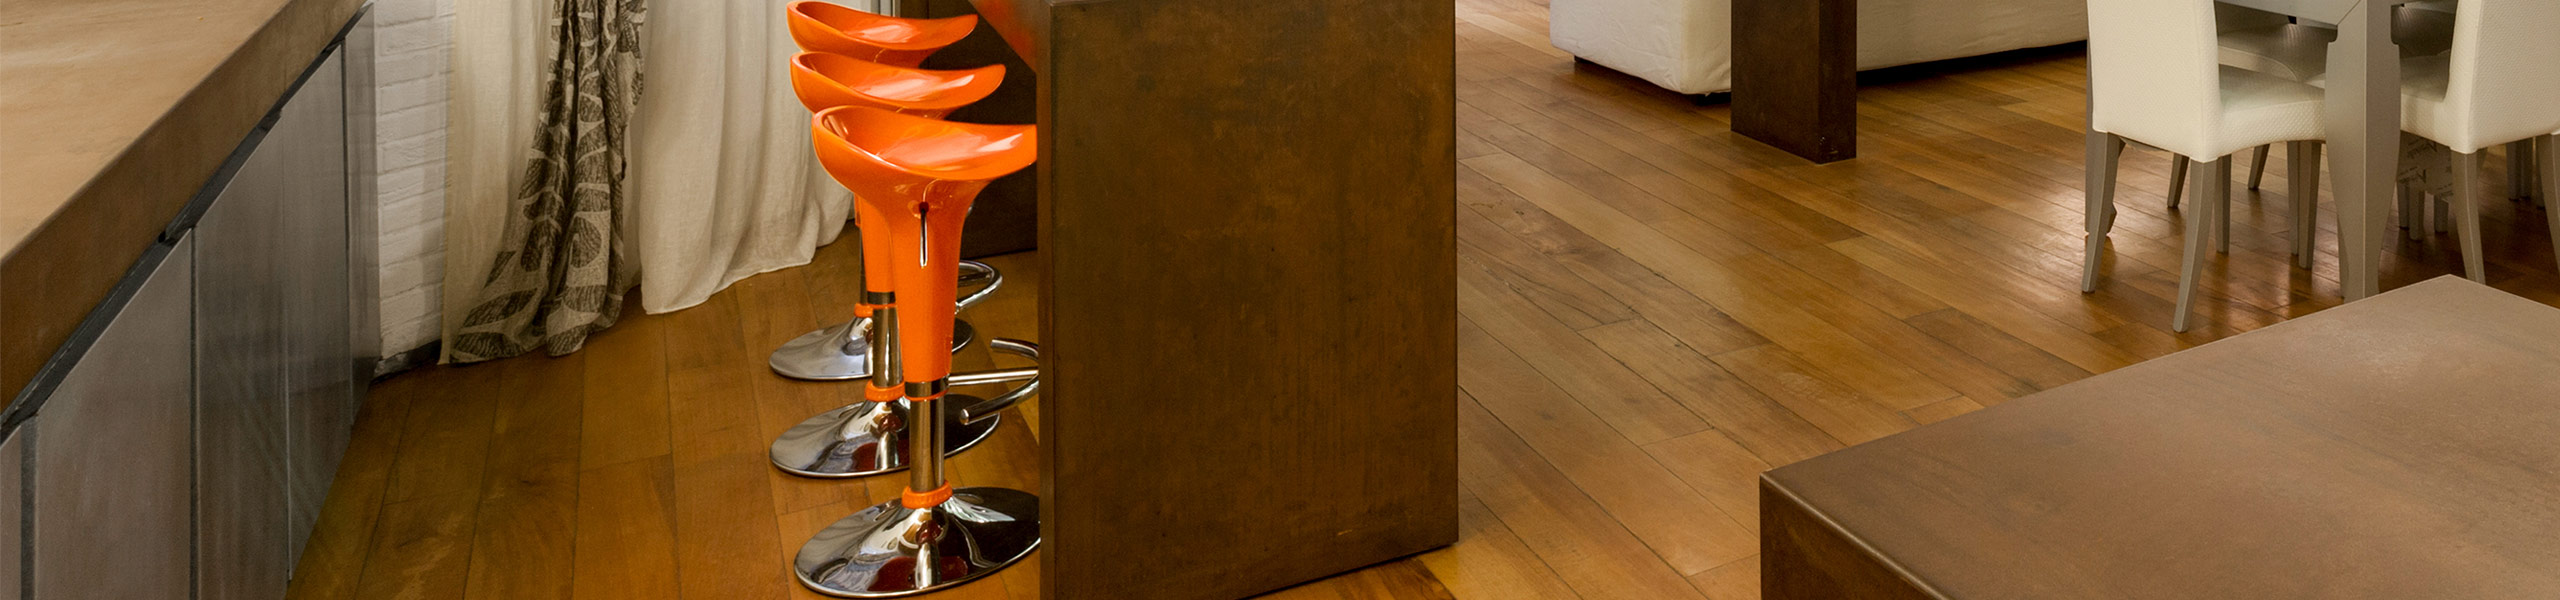 Gloss Coco Bar Stool Orange Video Banner